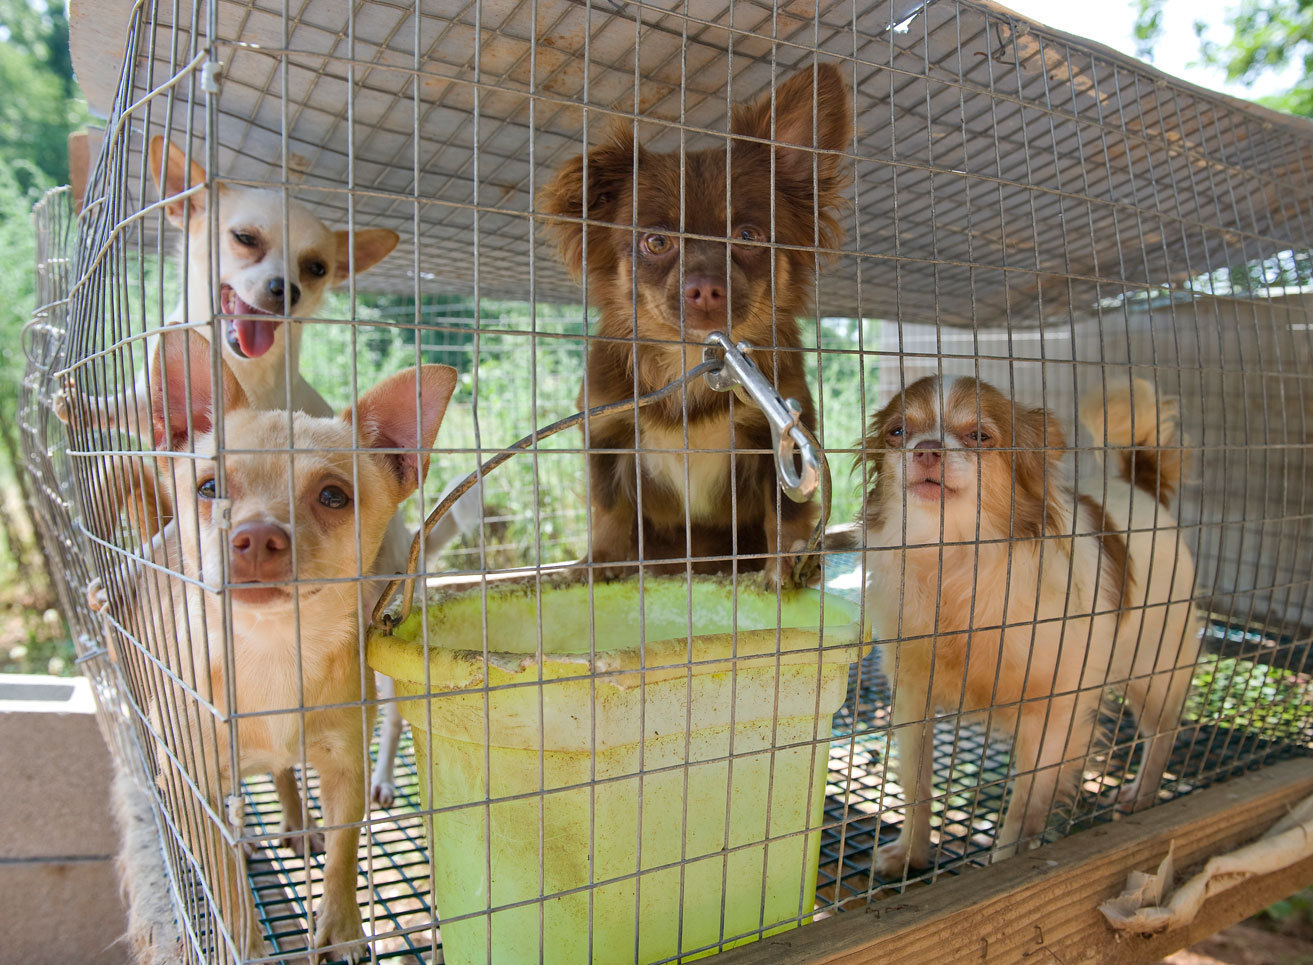 puppy mill All in all, bill rescues dozens of dogs as he and lisa visit puppy mill after puppy mill lisa says seeing the way the animals live was haunting.